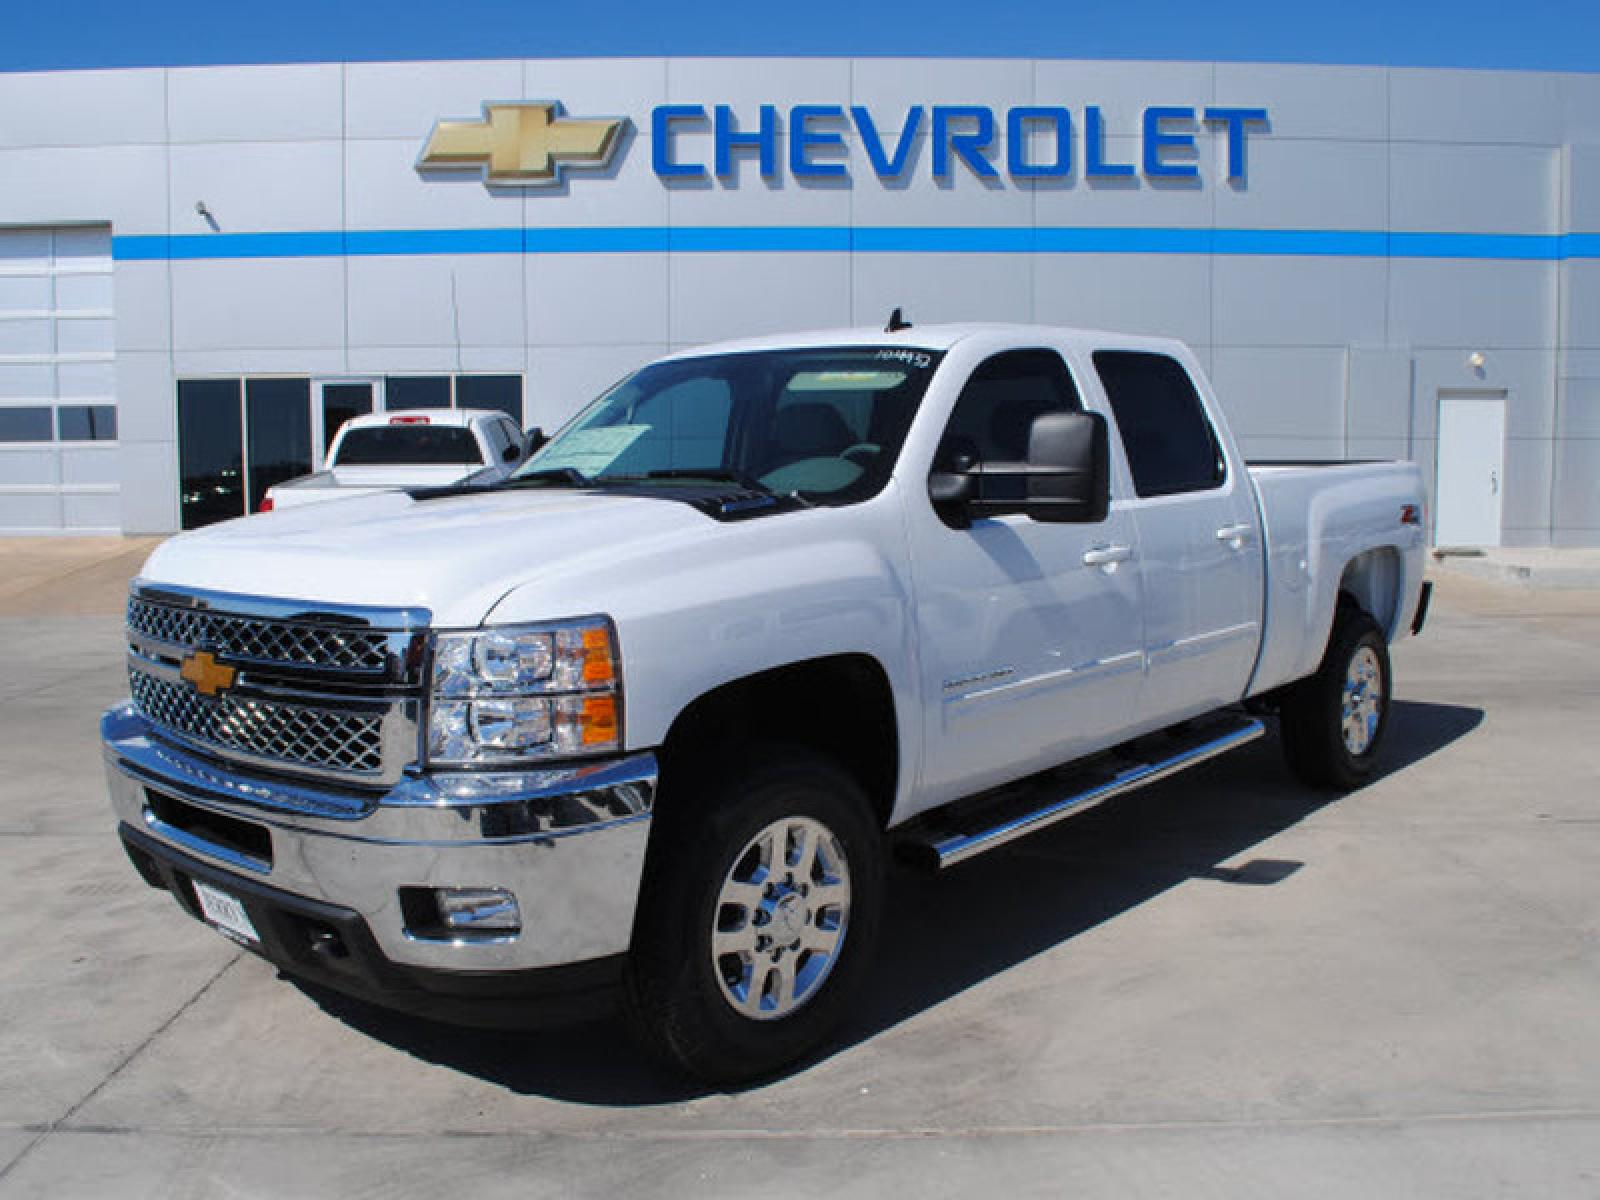 800 1024 1280 1600 origin 2012 chevrolet silverado 2500hd